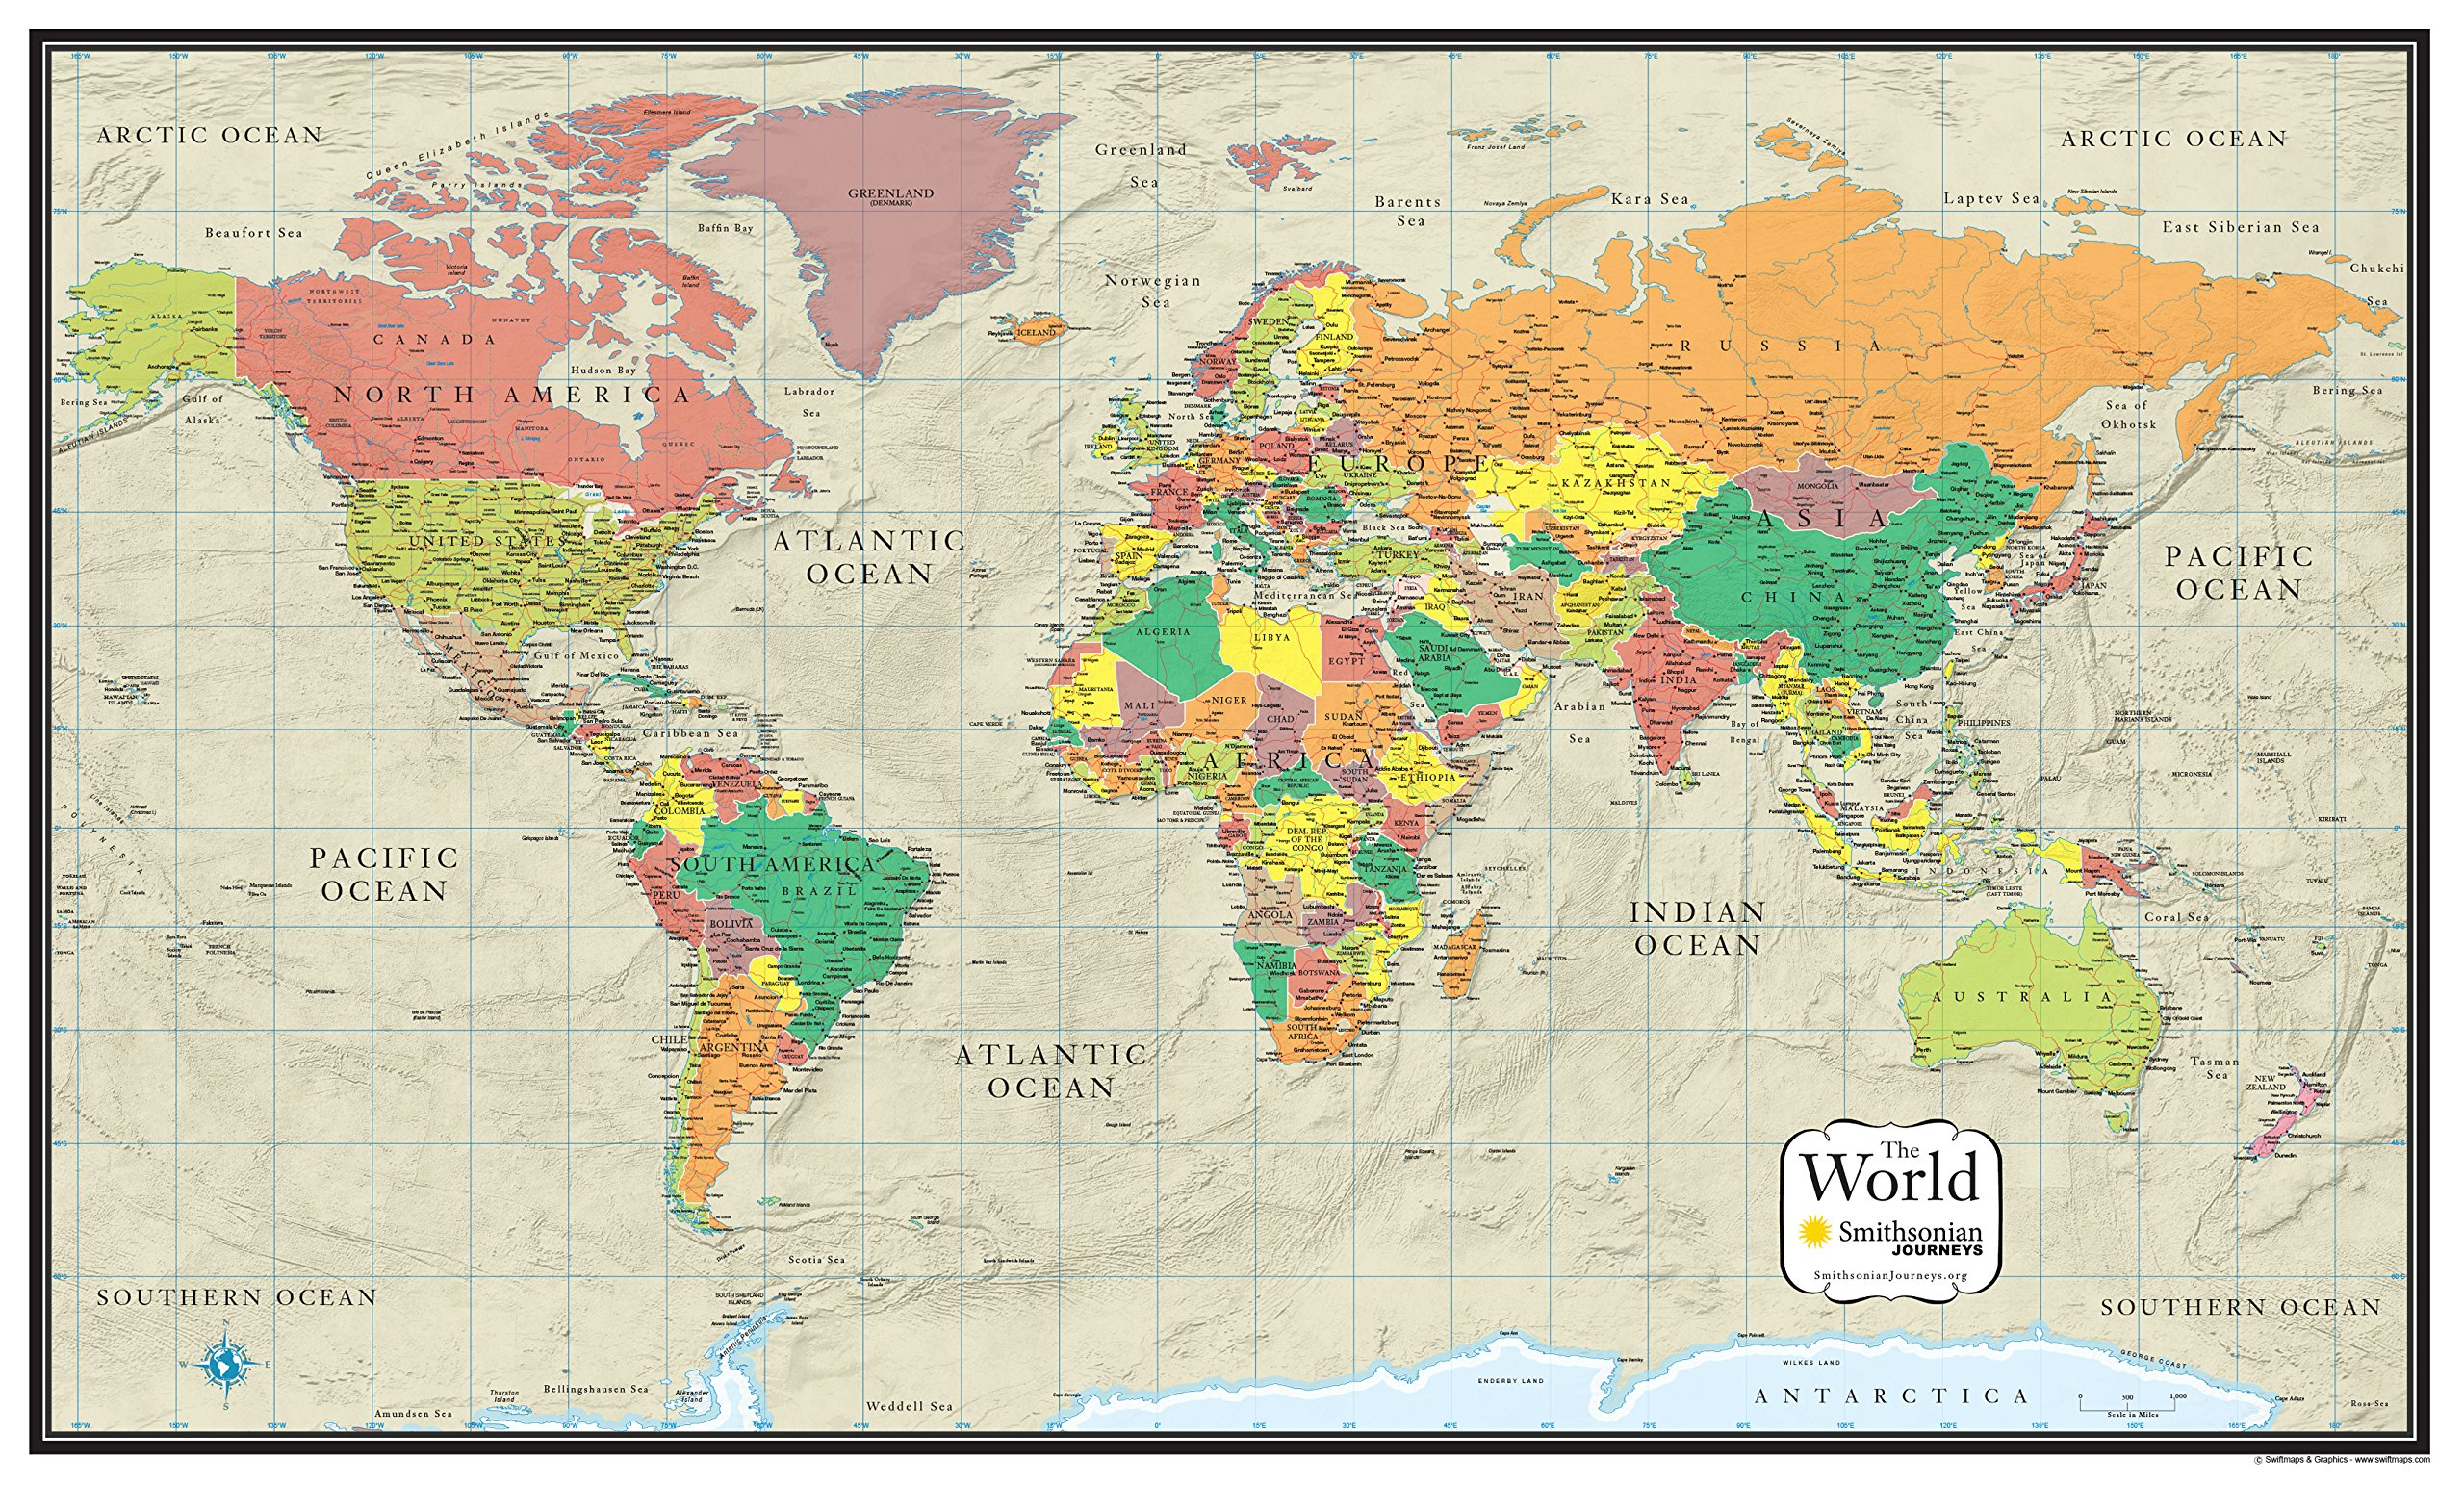 24x36 World Wall Map by Smithsonian Journeys - Tan Oceans Special Edition (24x36 Laminated)